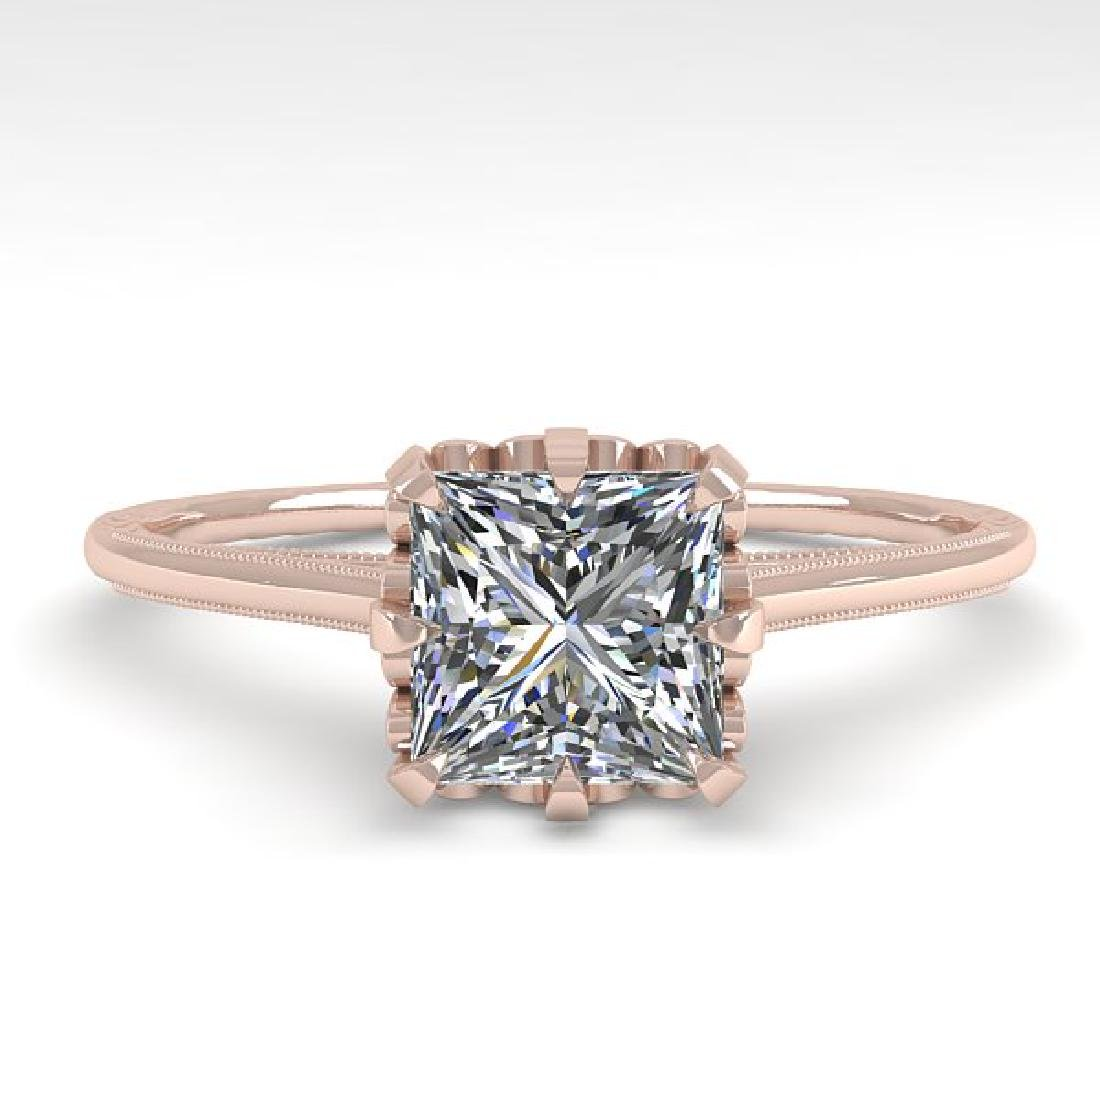 1.0 CTW VS/SI Princess Diamond Solitaire Ring 14K Rose